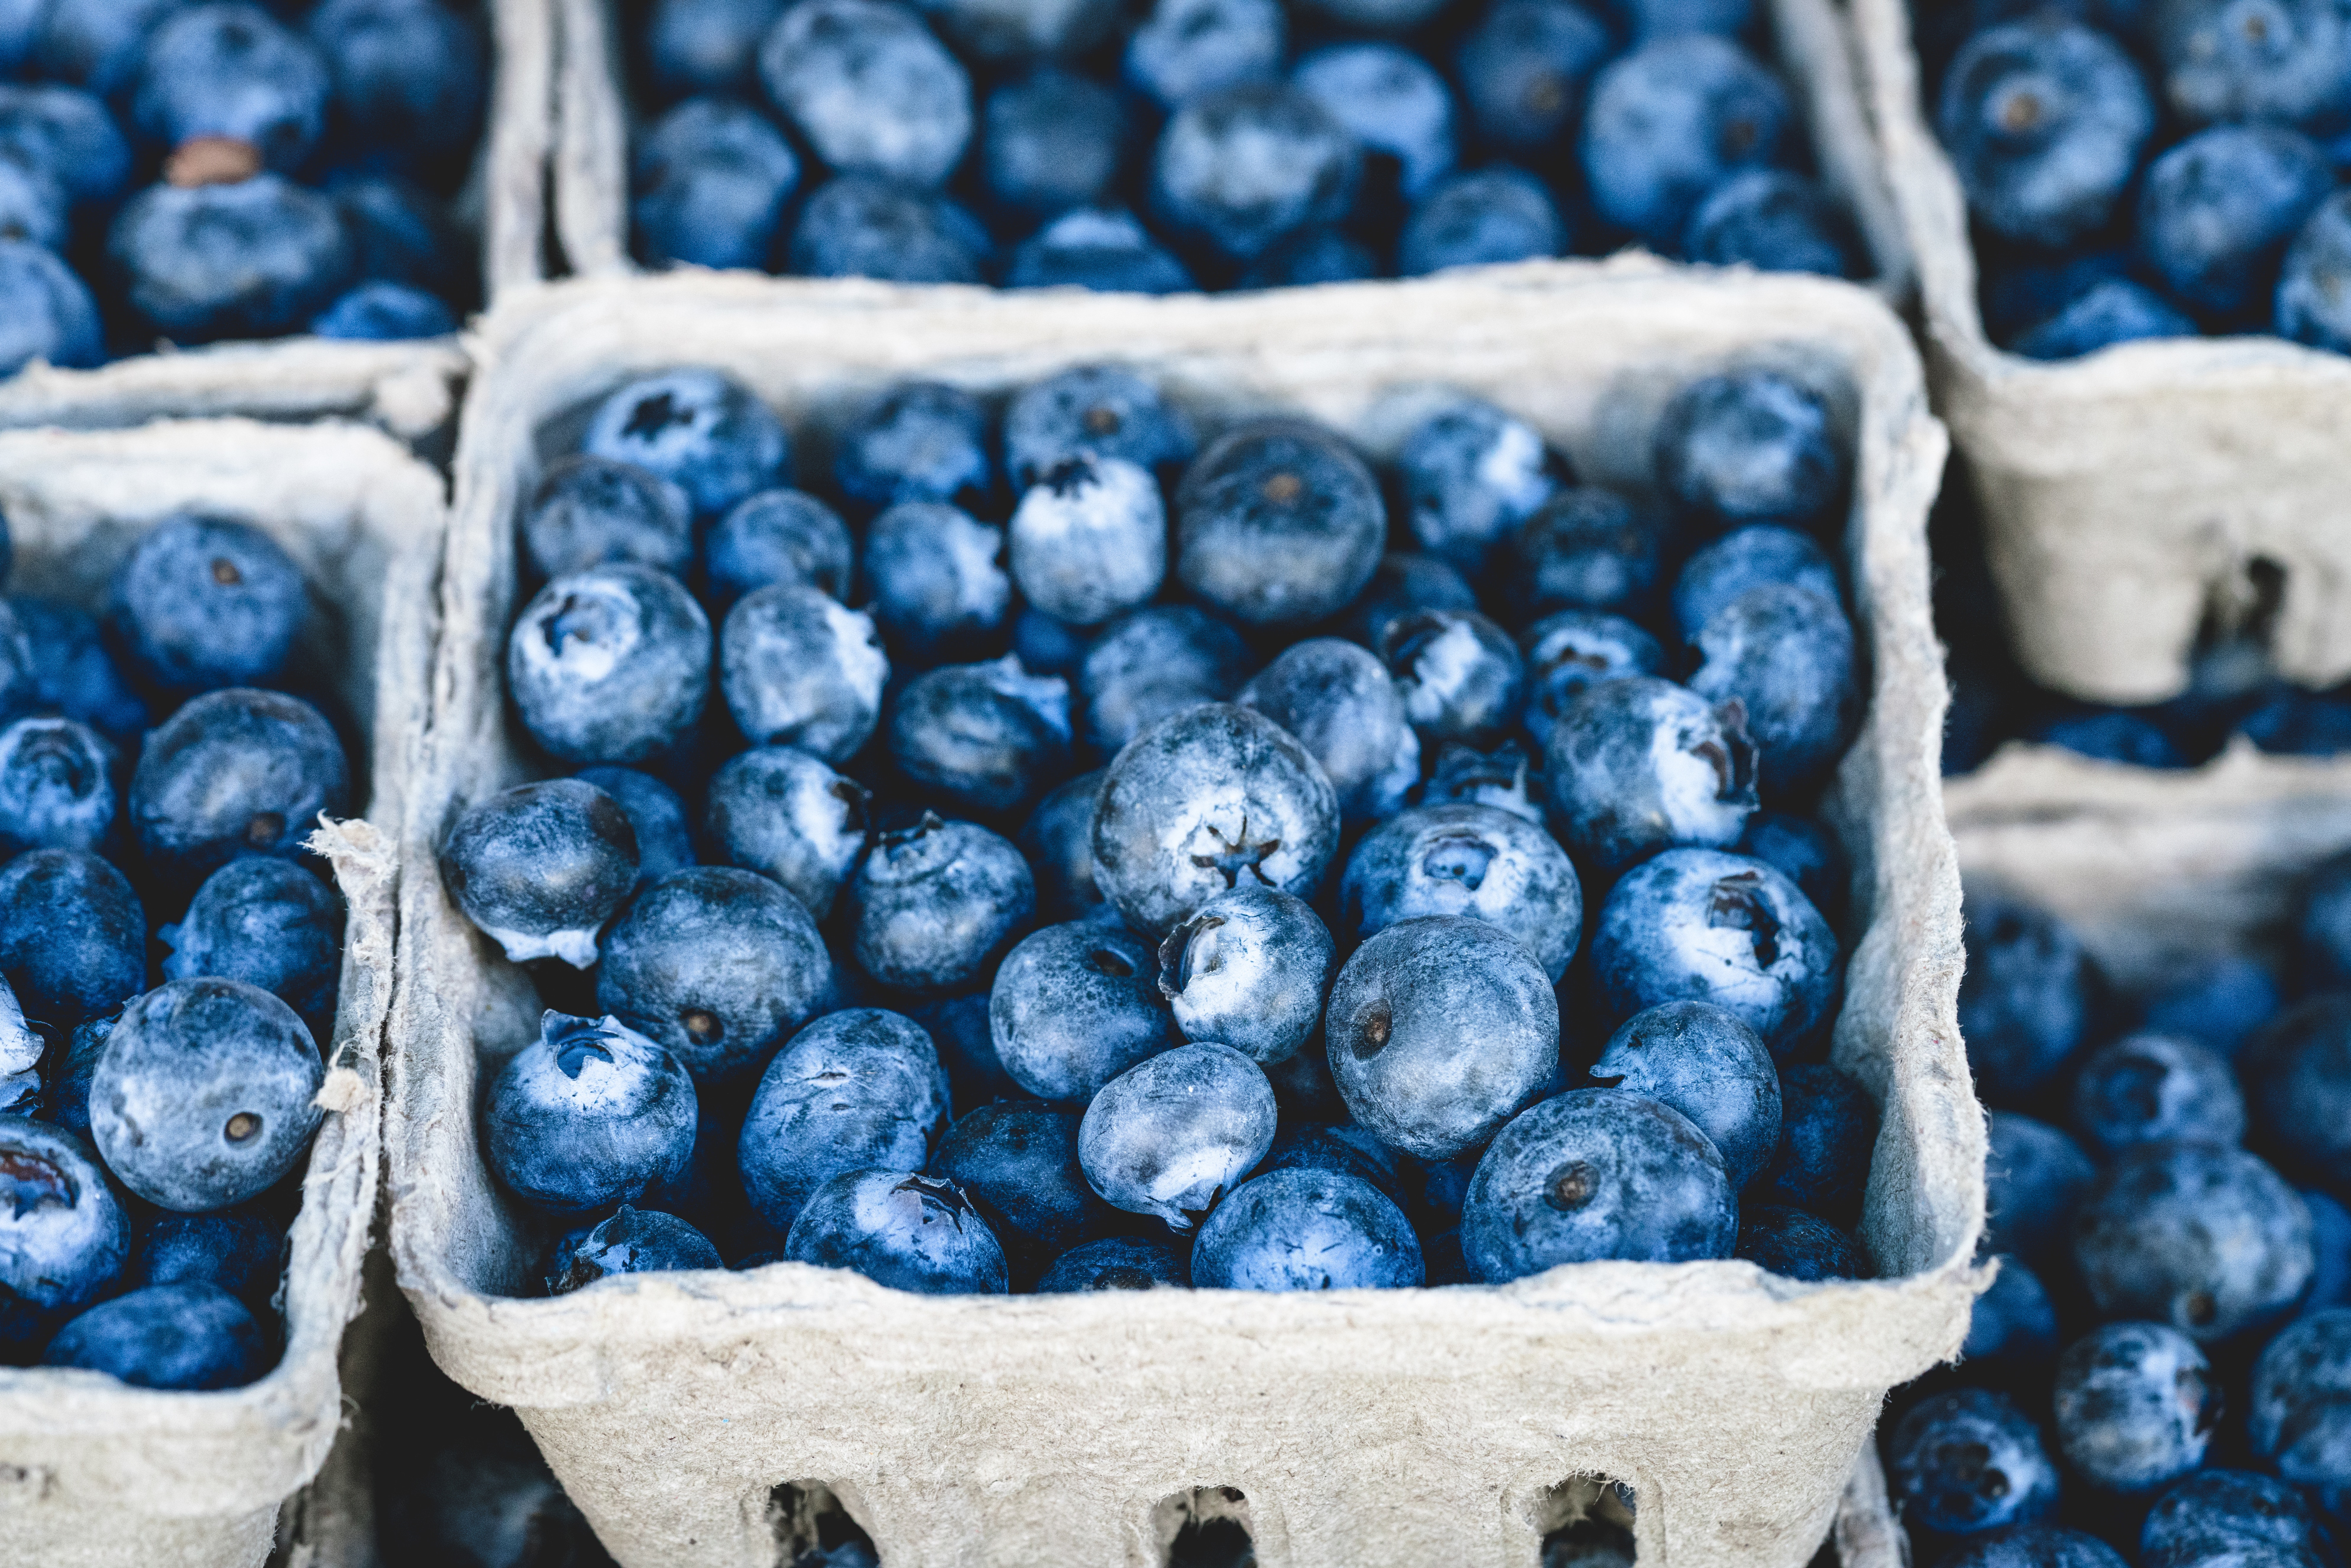 Global Blueberry Market Overview